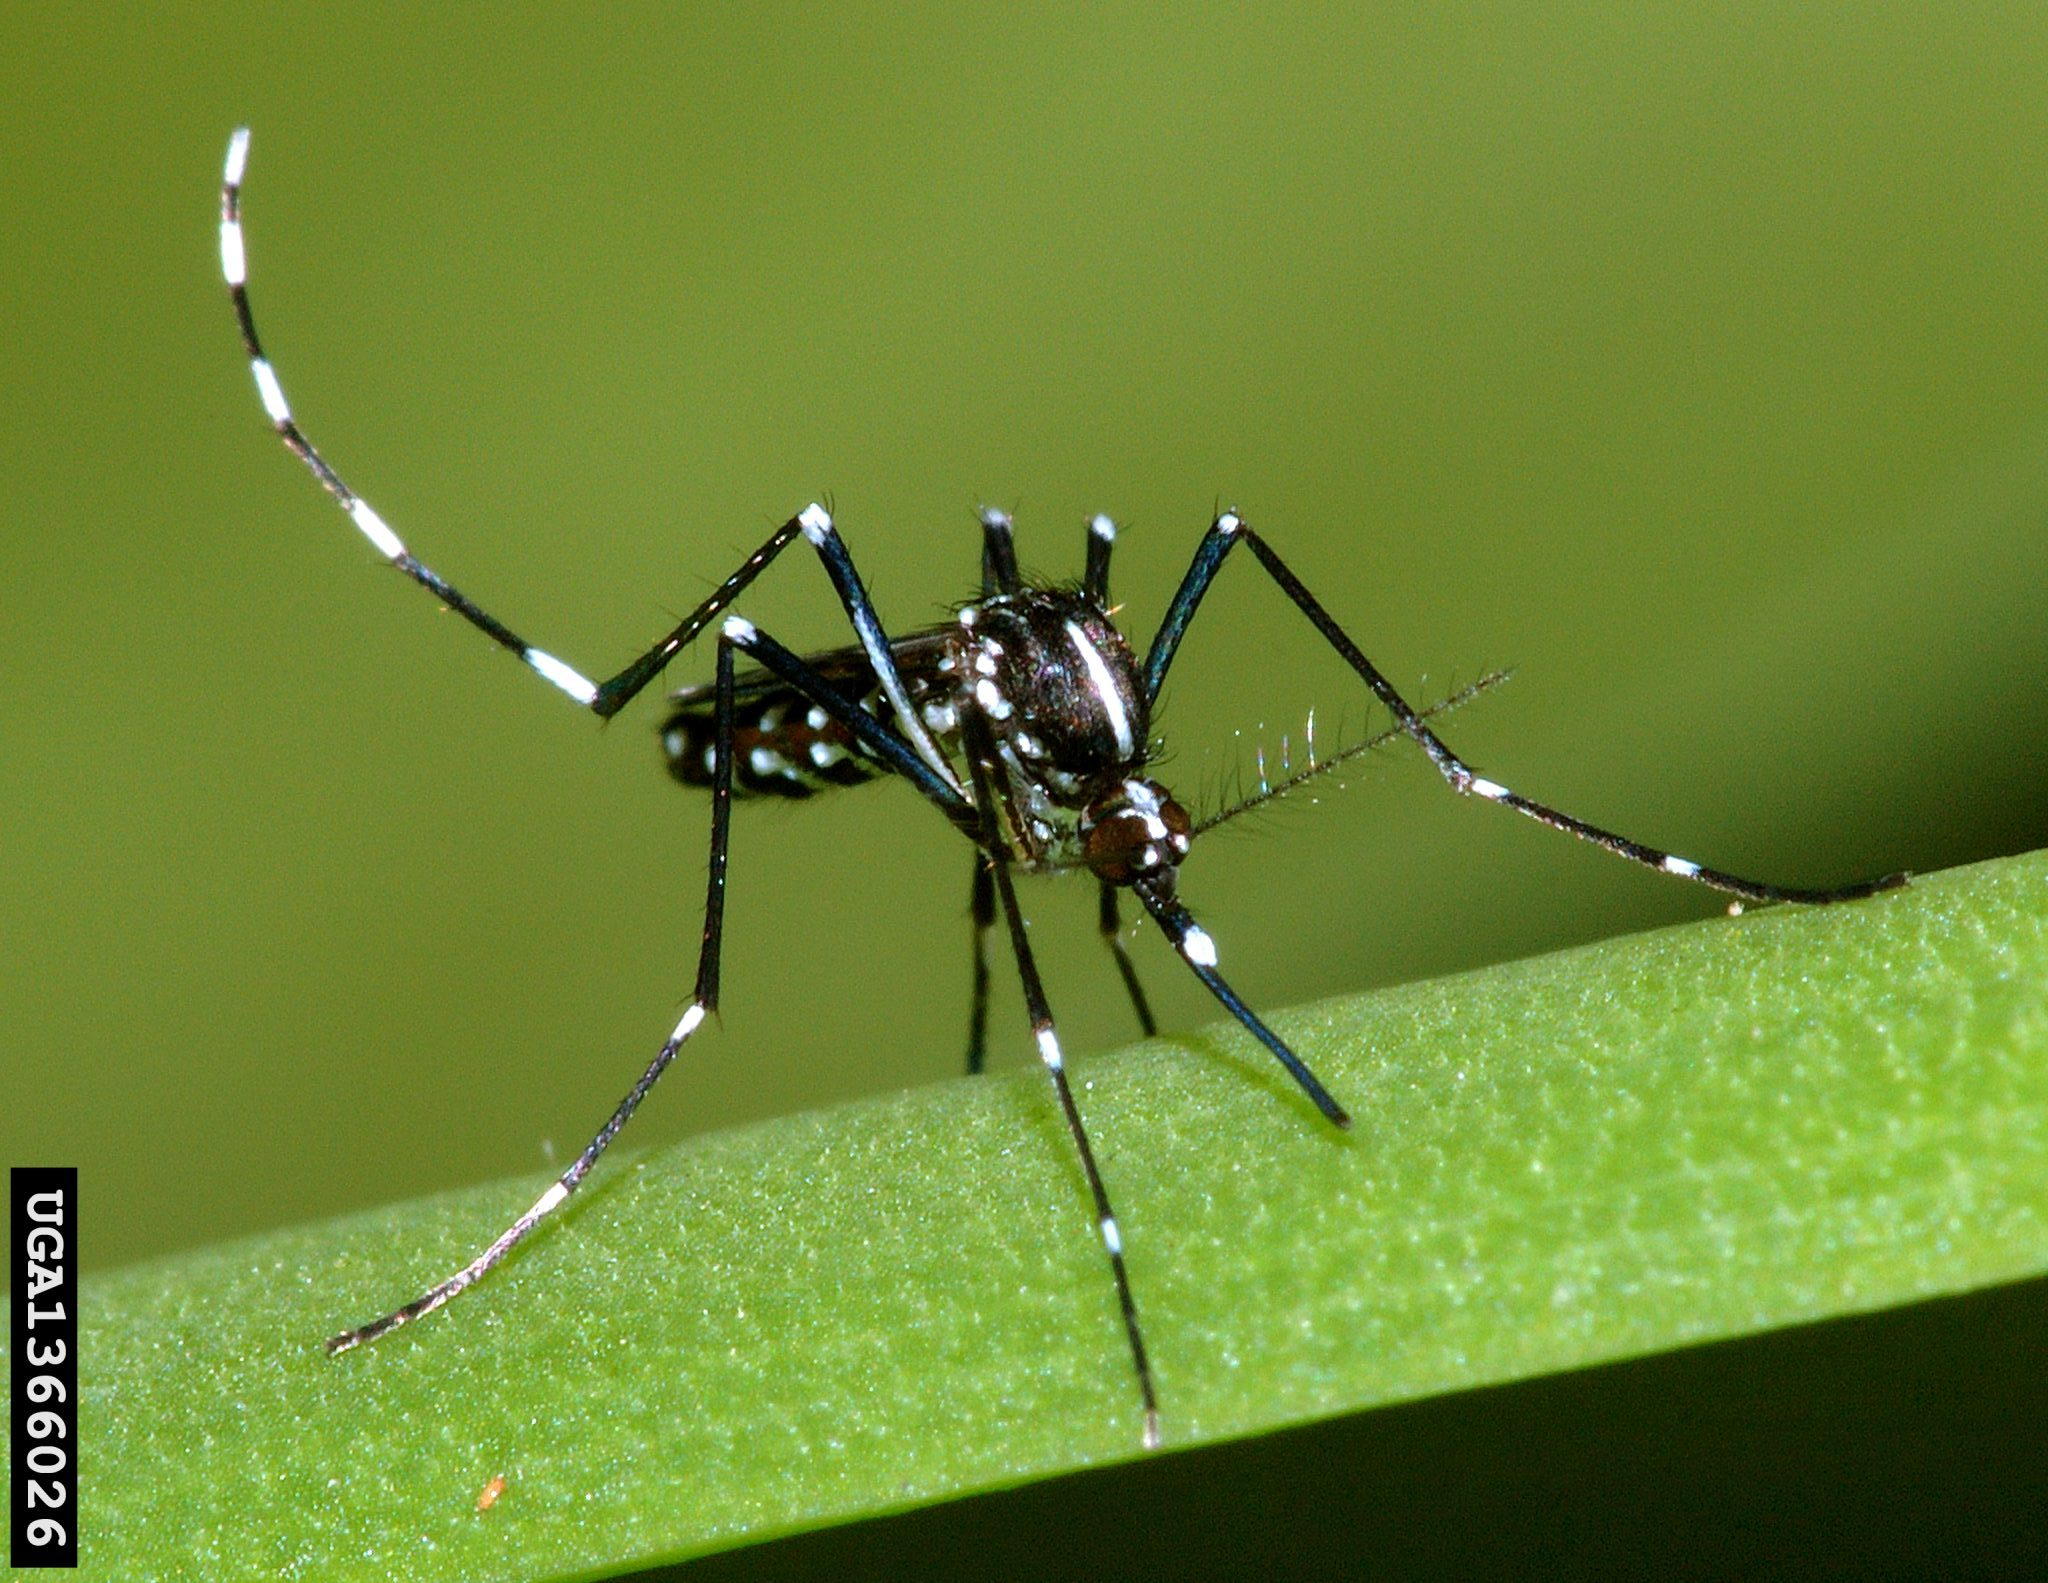 Image of an Asian Tiger Mosquito on a plant stem. Susan Ellis, Bugwood.org